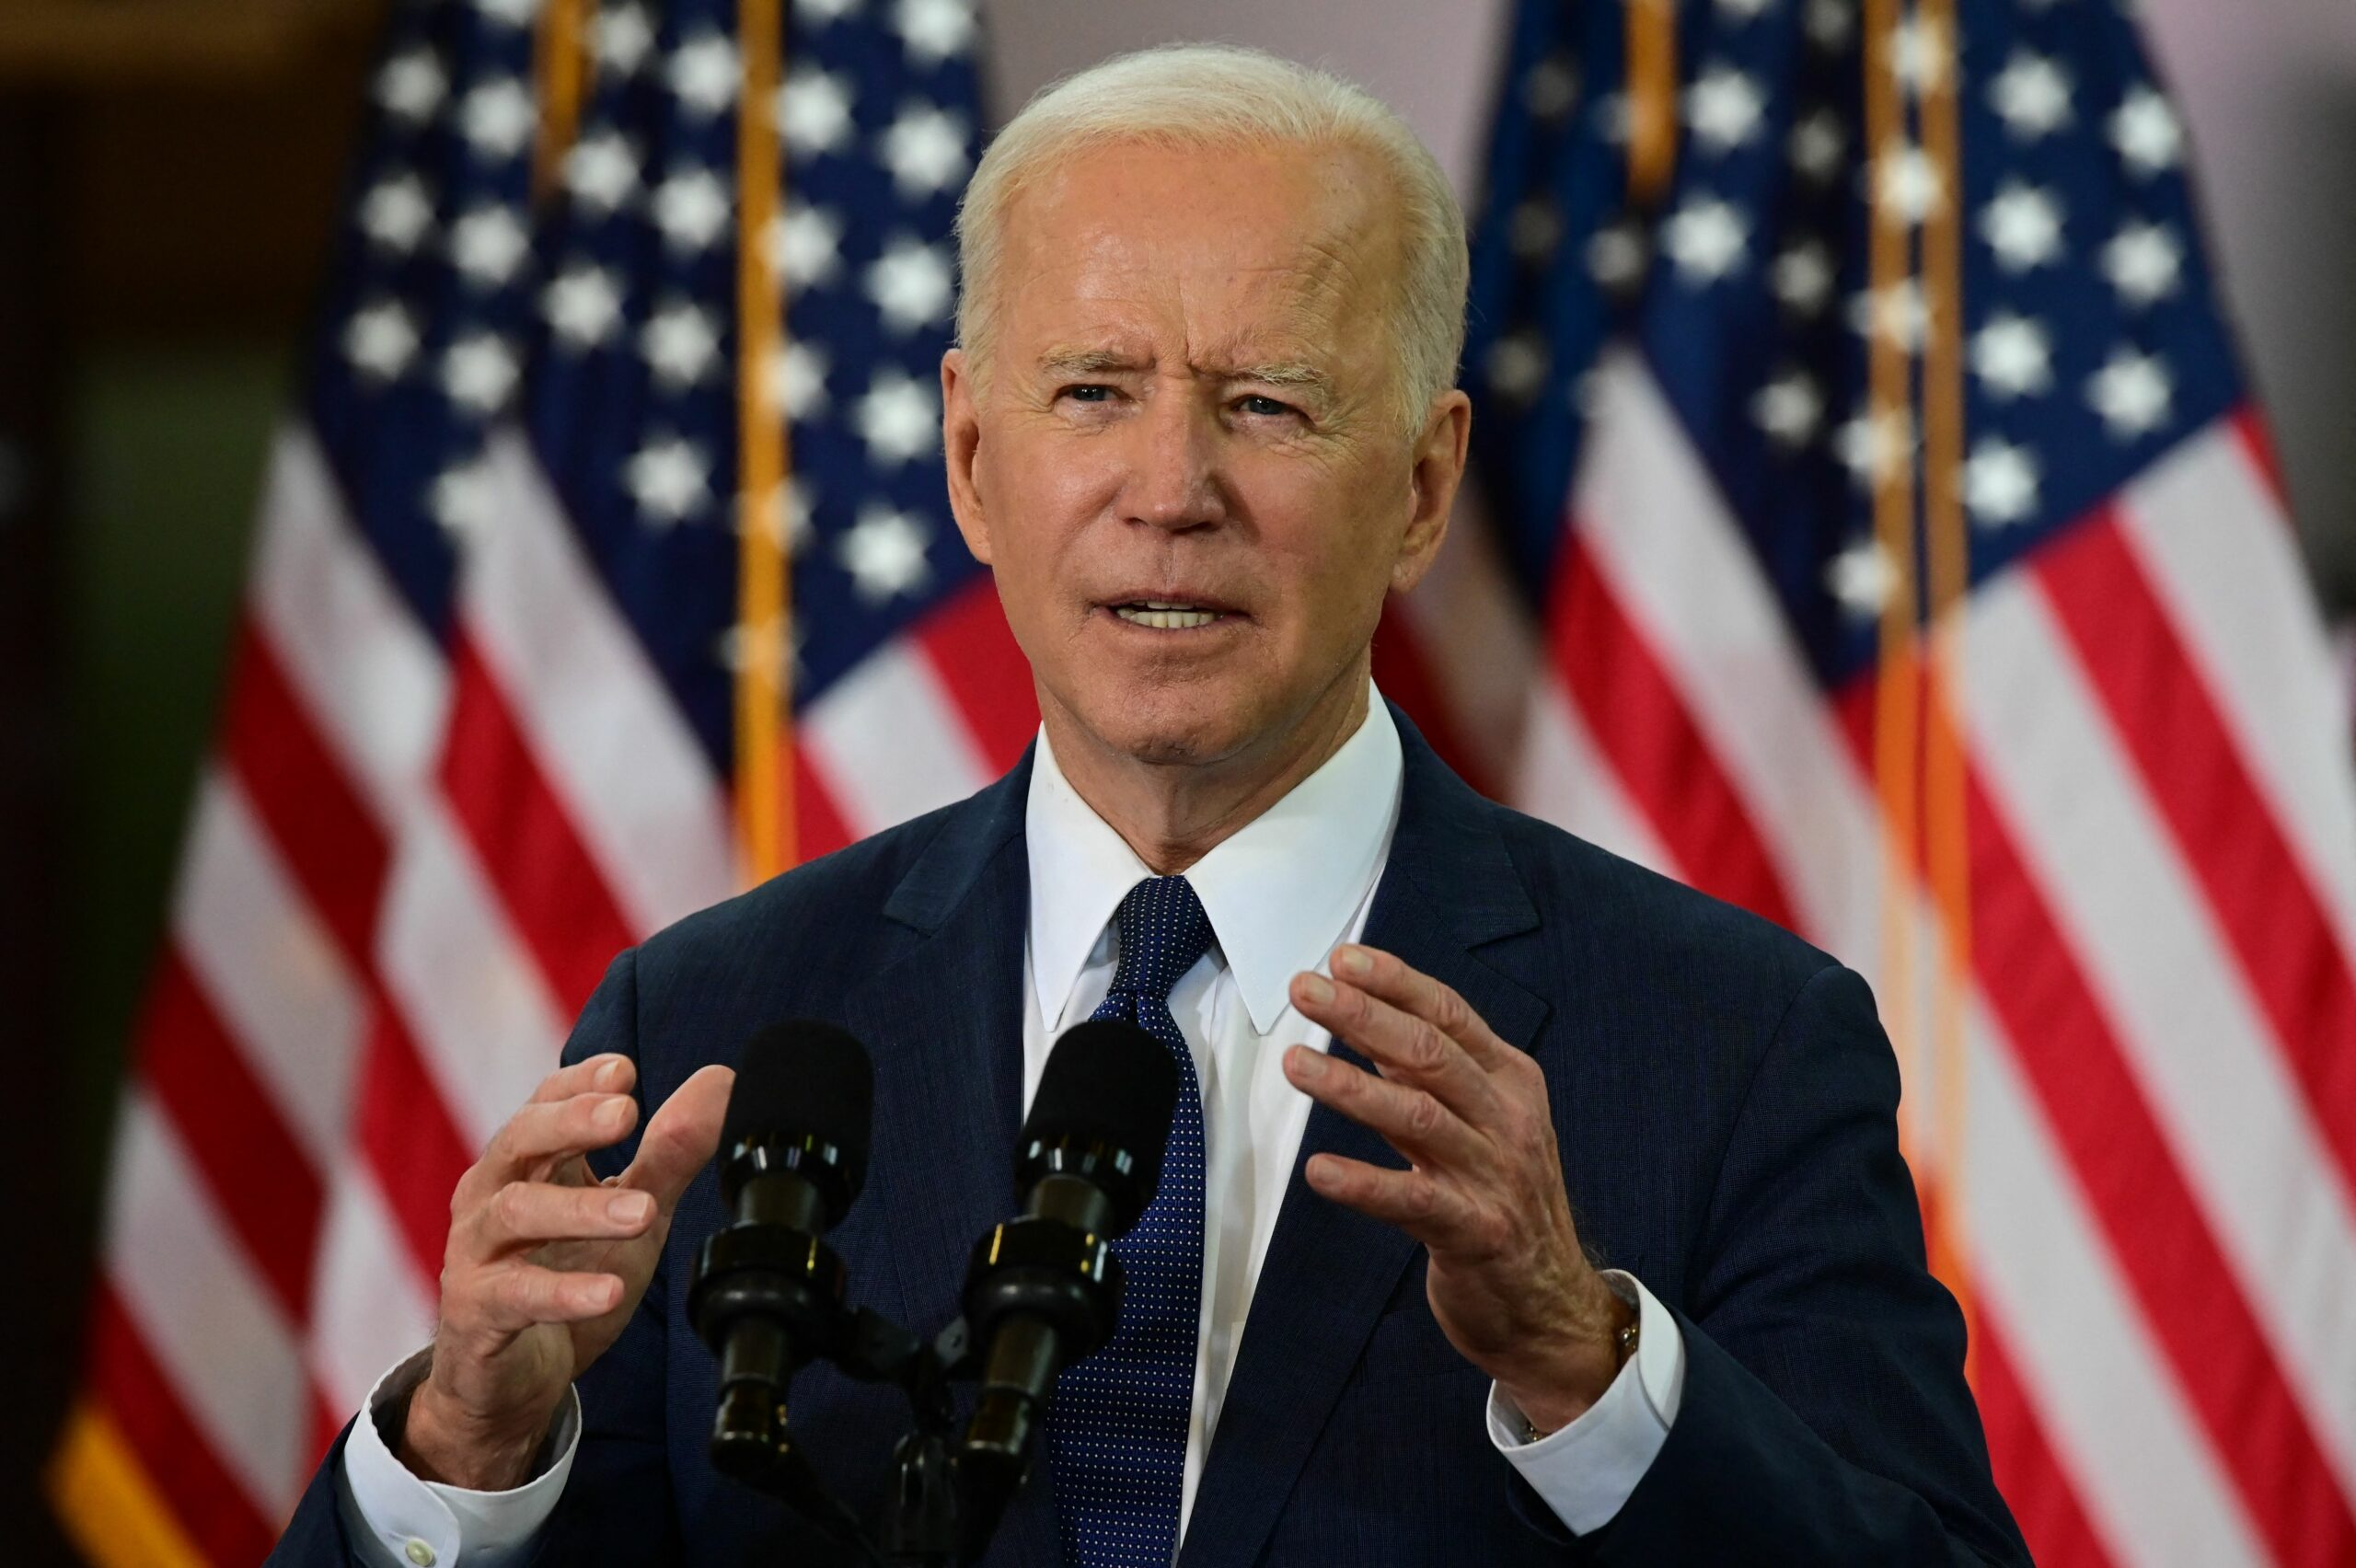 President Joe Biden speaks in Pittsburgh, Pennsylvania, on March 31, 2021. Biden will unveiled a $2 trillion infrastructure plan in Pittsburgh. Credit: Jim Watson/AFP via Getty Images